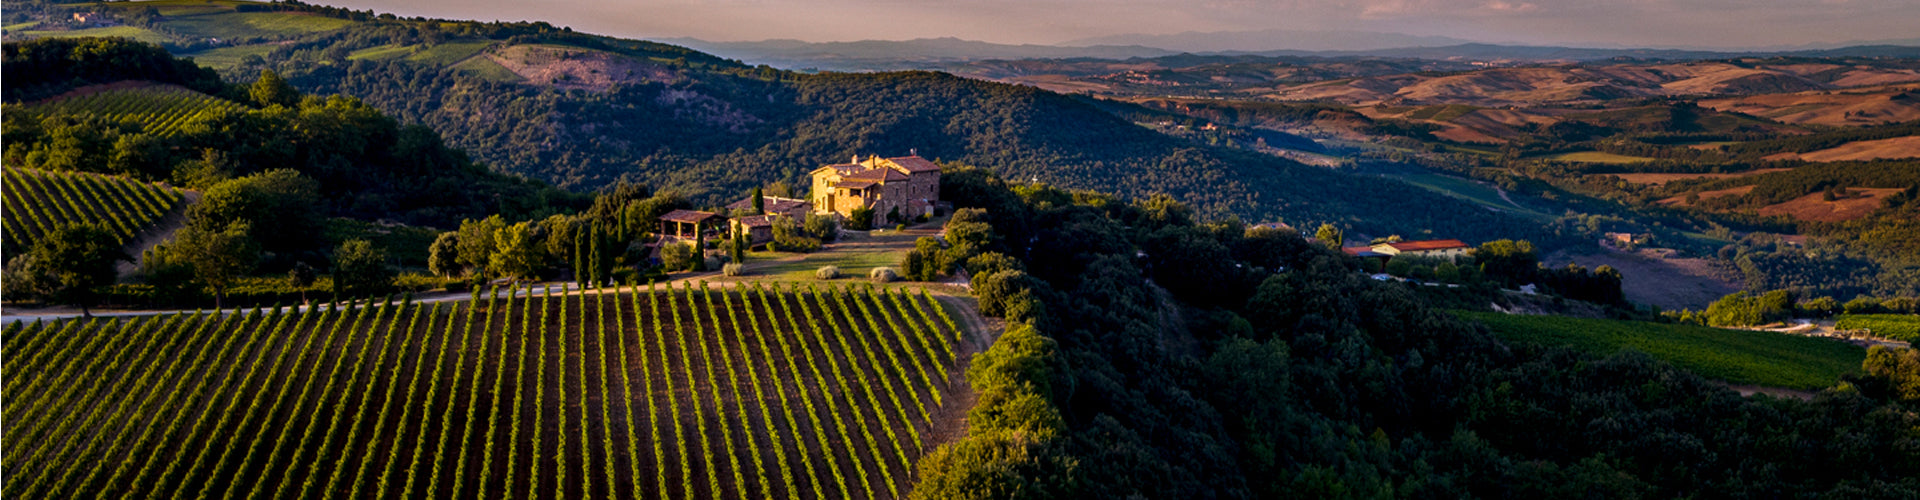 Ariel photo of Mastrojanni Estate and Vineyards in Montalcino, Tuscany